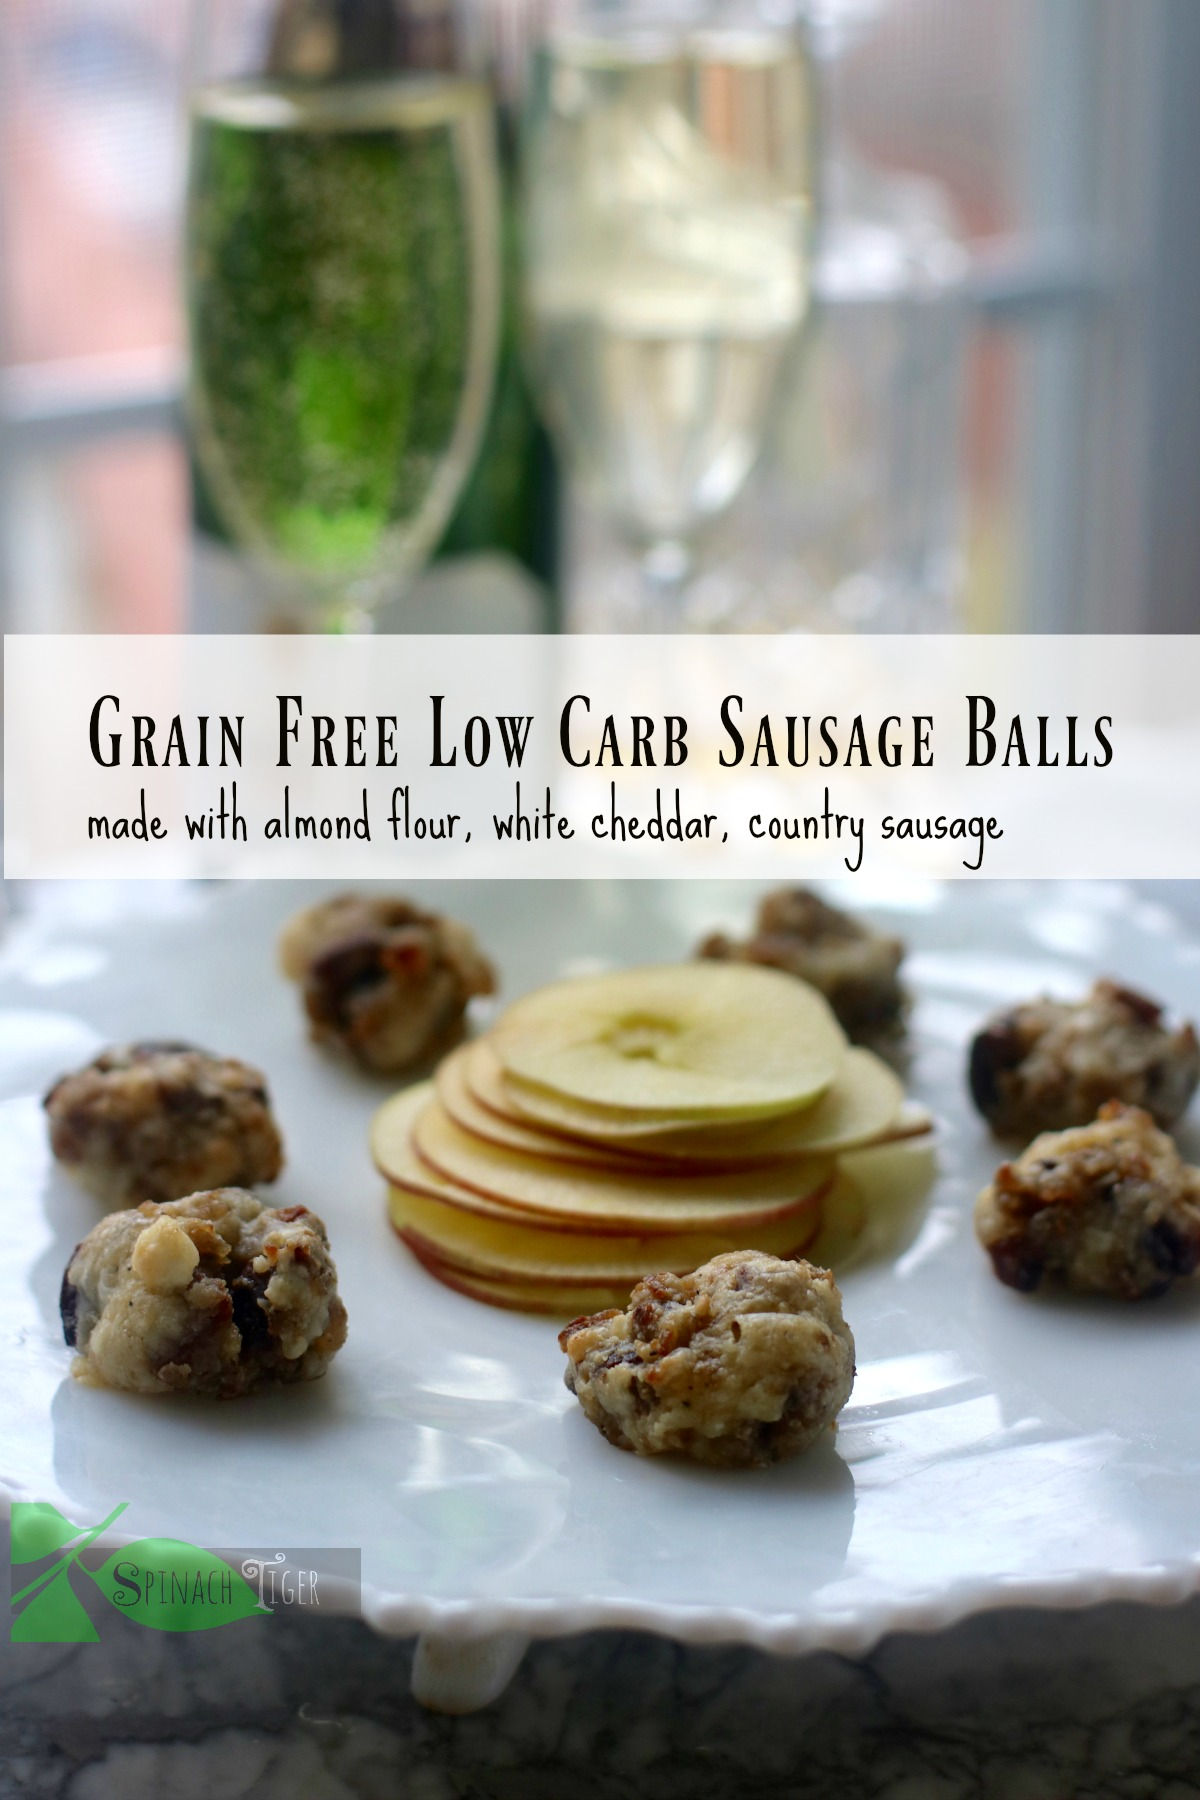 Grain Free Low Carb Easy Sausage Balls from Spinach TIger